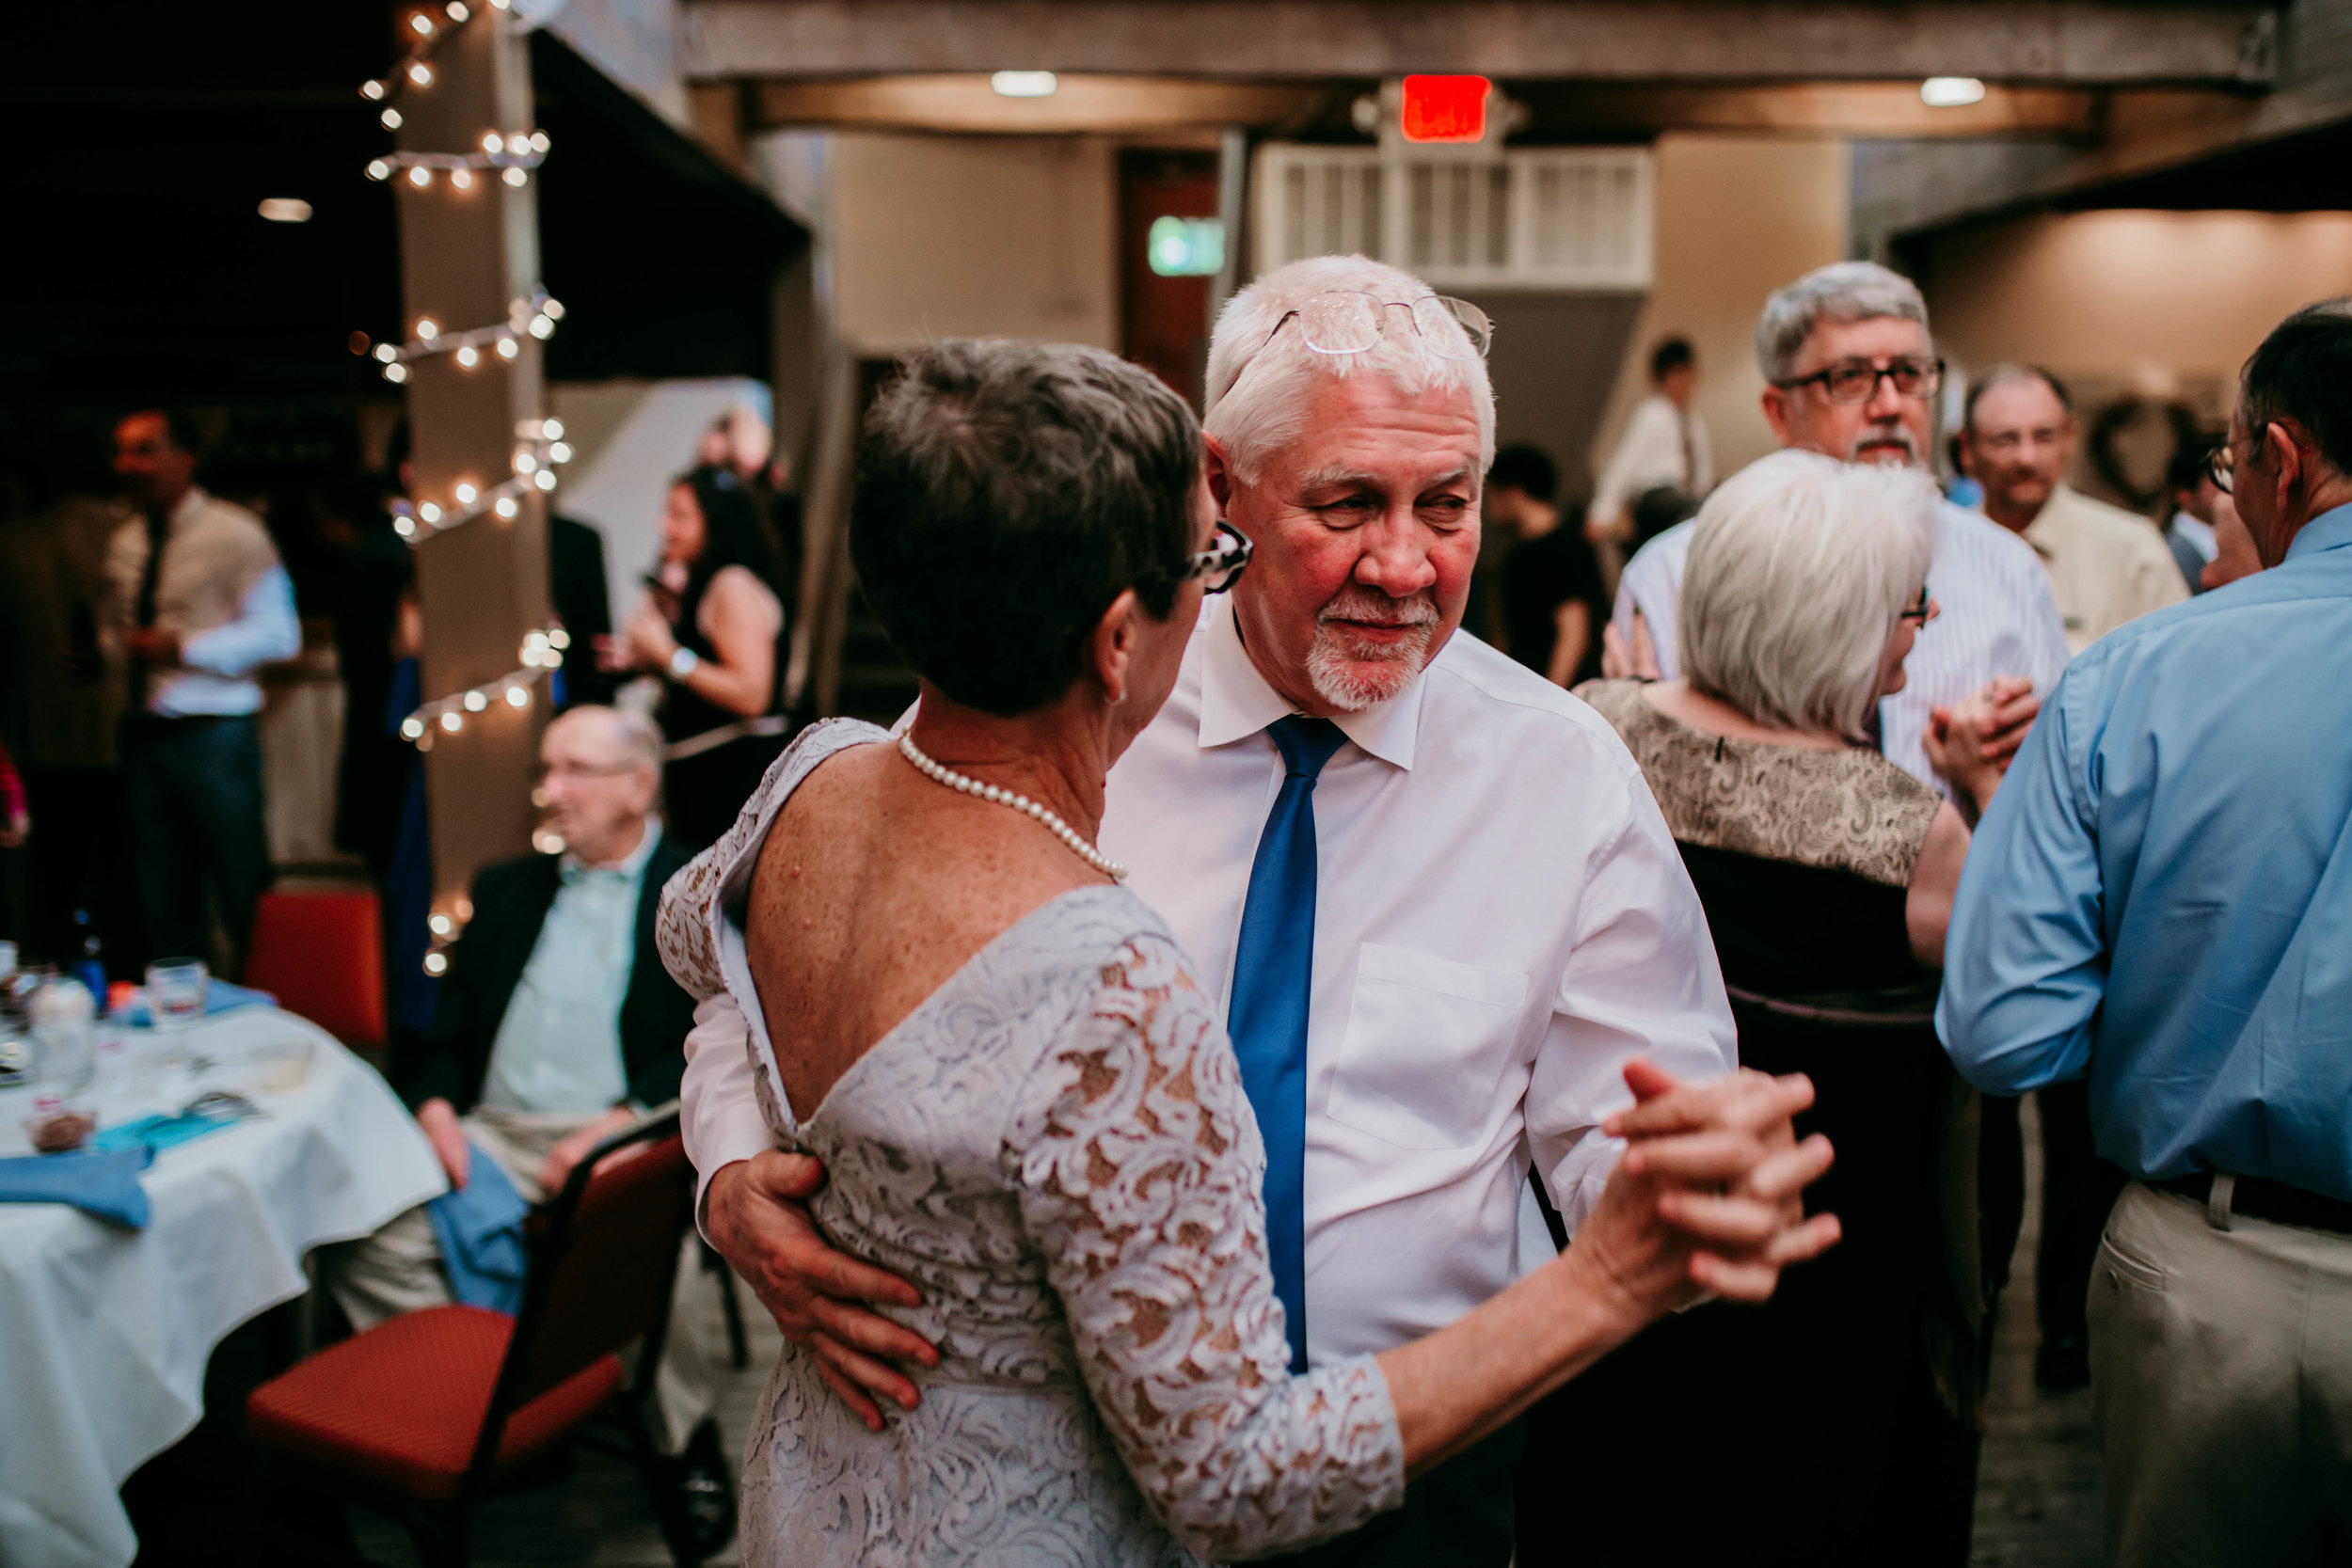 Bert & Lauren's North Kansas City Spring Wedding | Hannahill Photography | Raleigh Durham Photographer | North Carolina Wedding Photography | Family Photographer | Wedding photographer | the grooms parents share a sweet dance at the reception